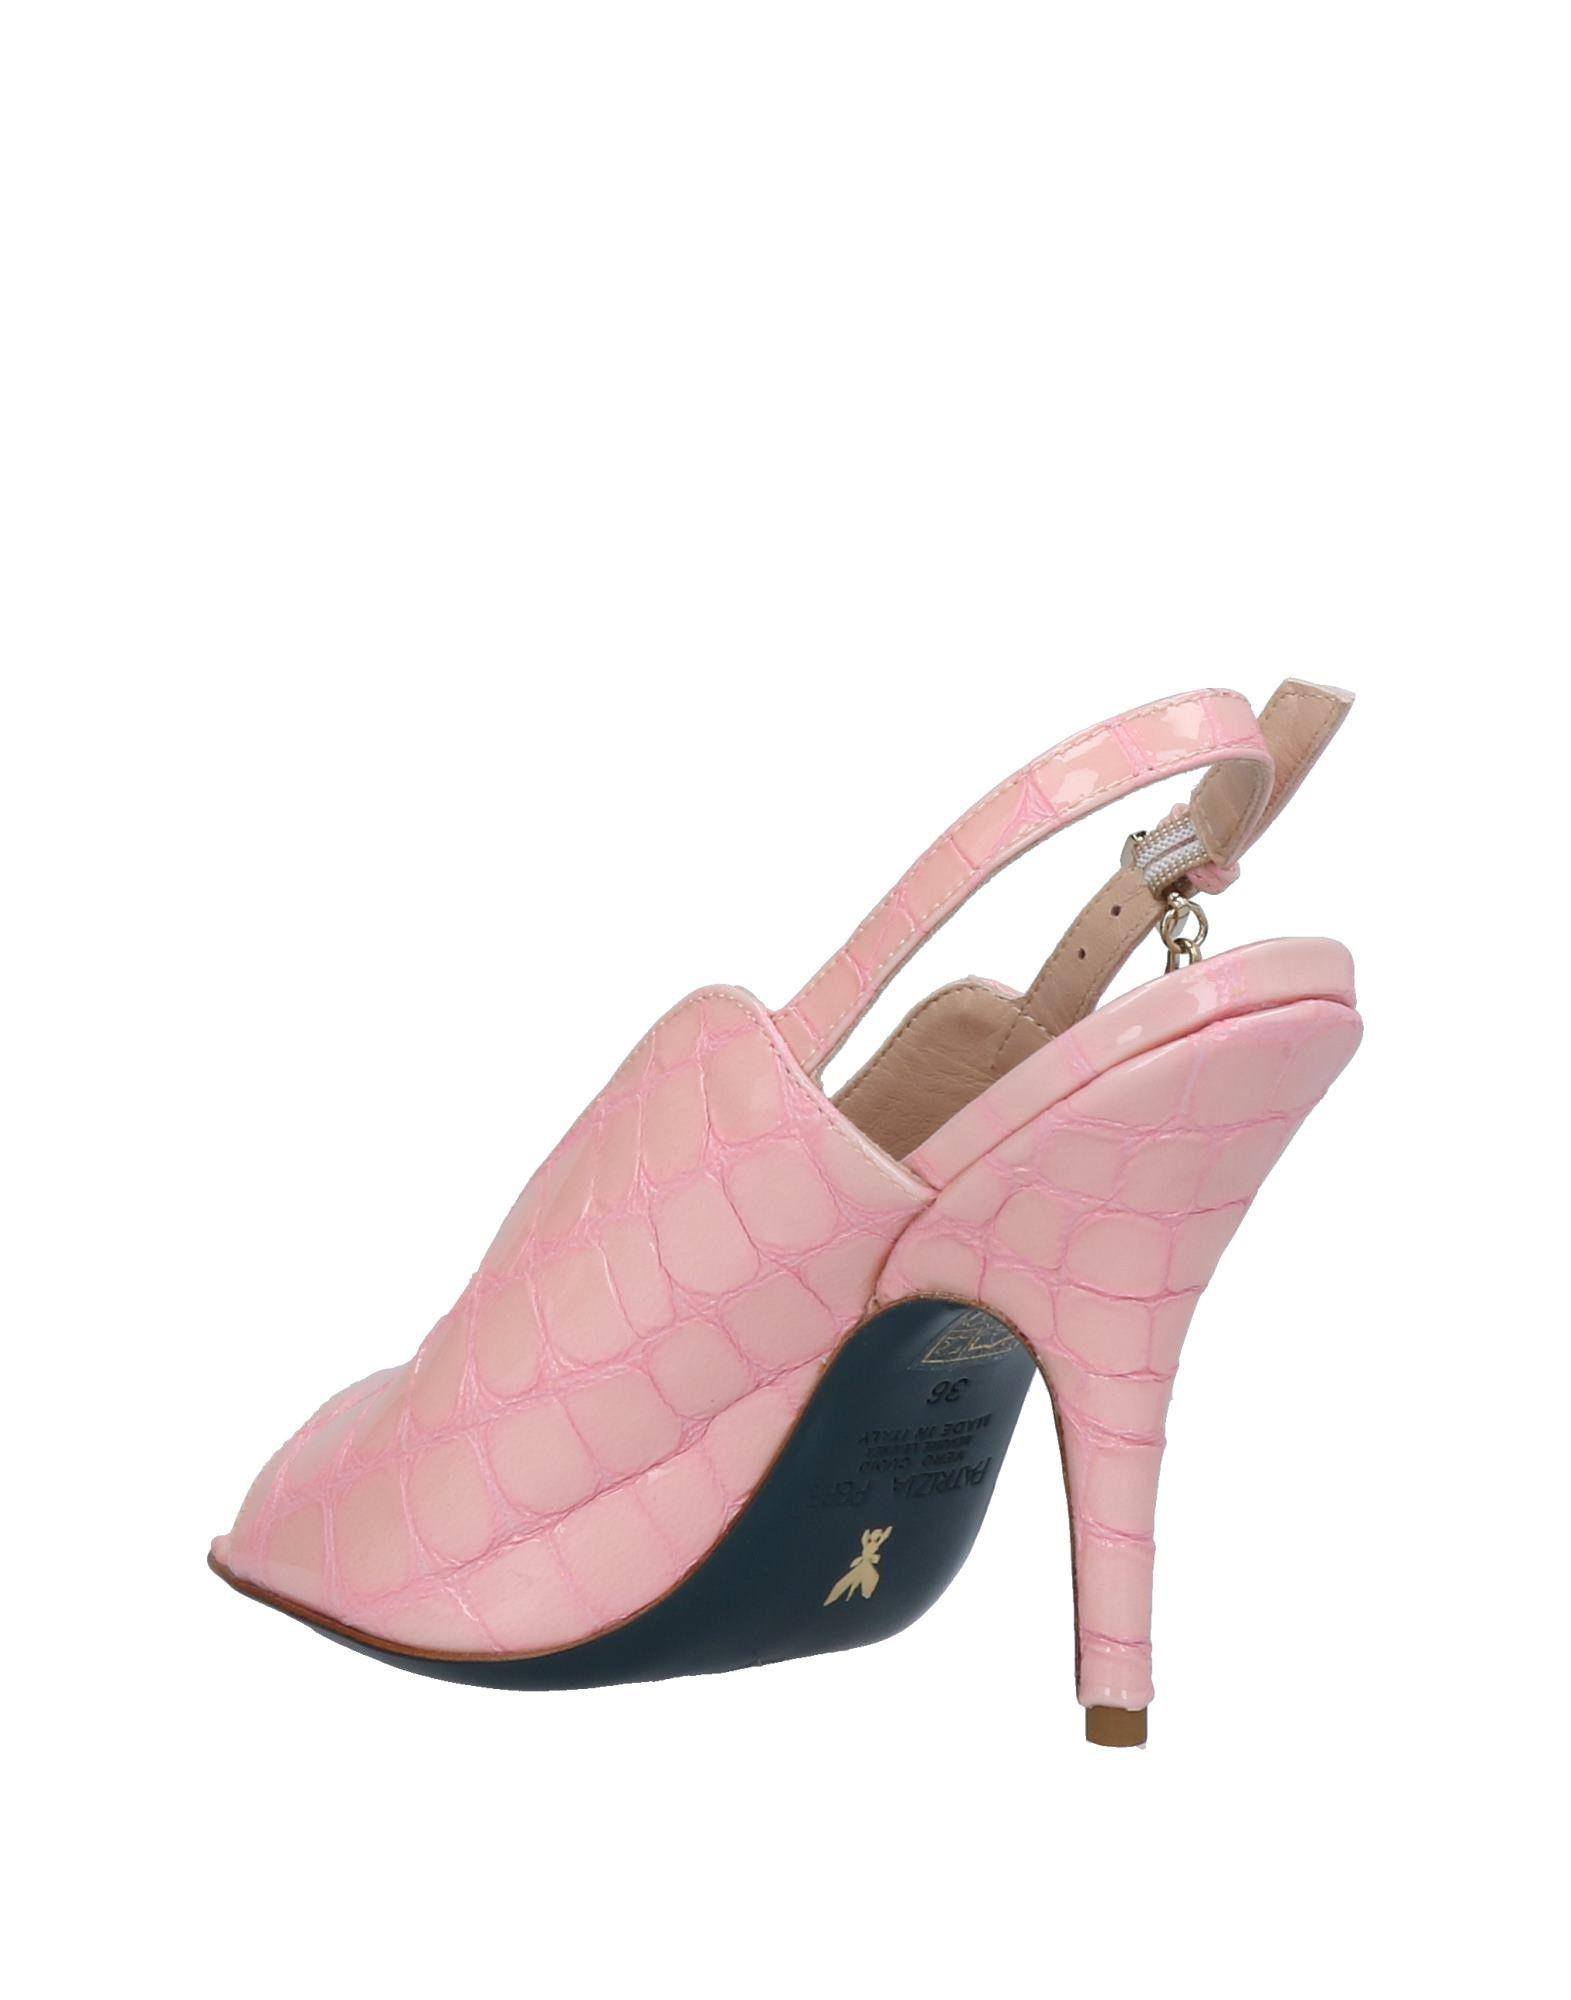 Lyst - Patrizia Pepe Sandals in Pink 8ae85e8fb89